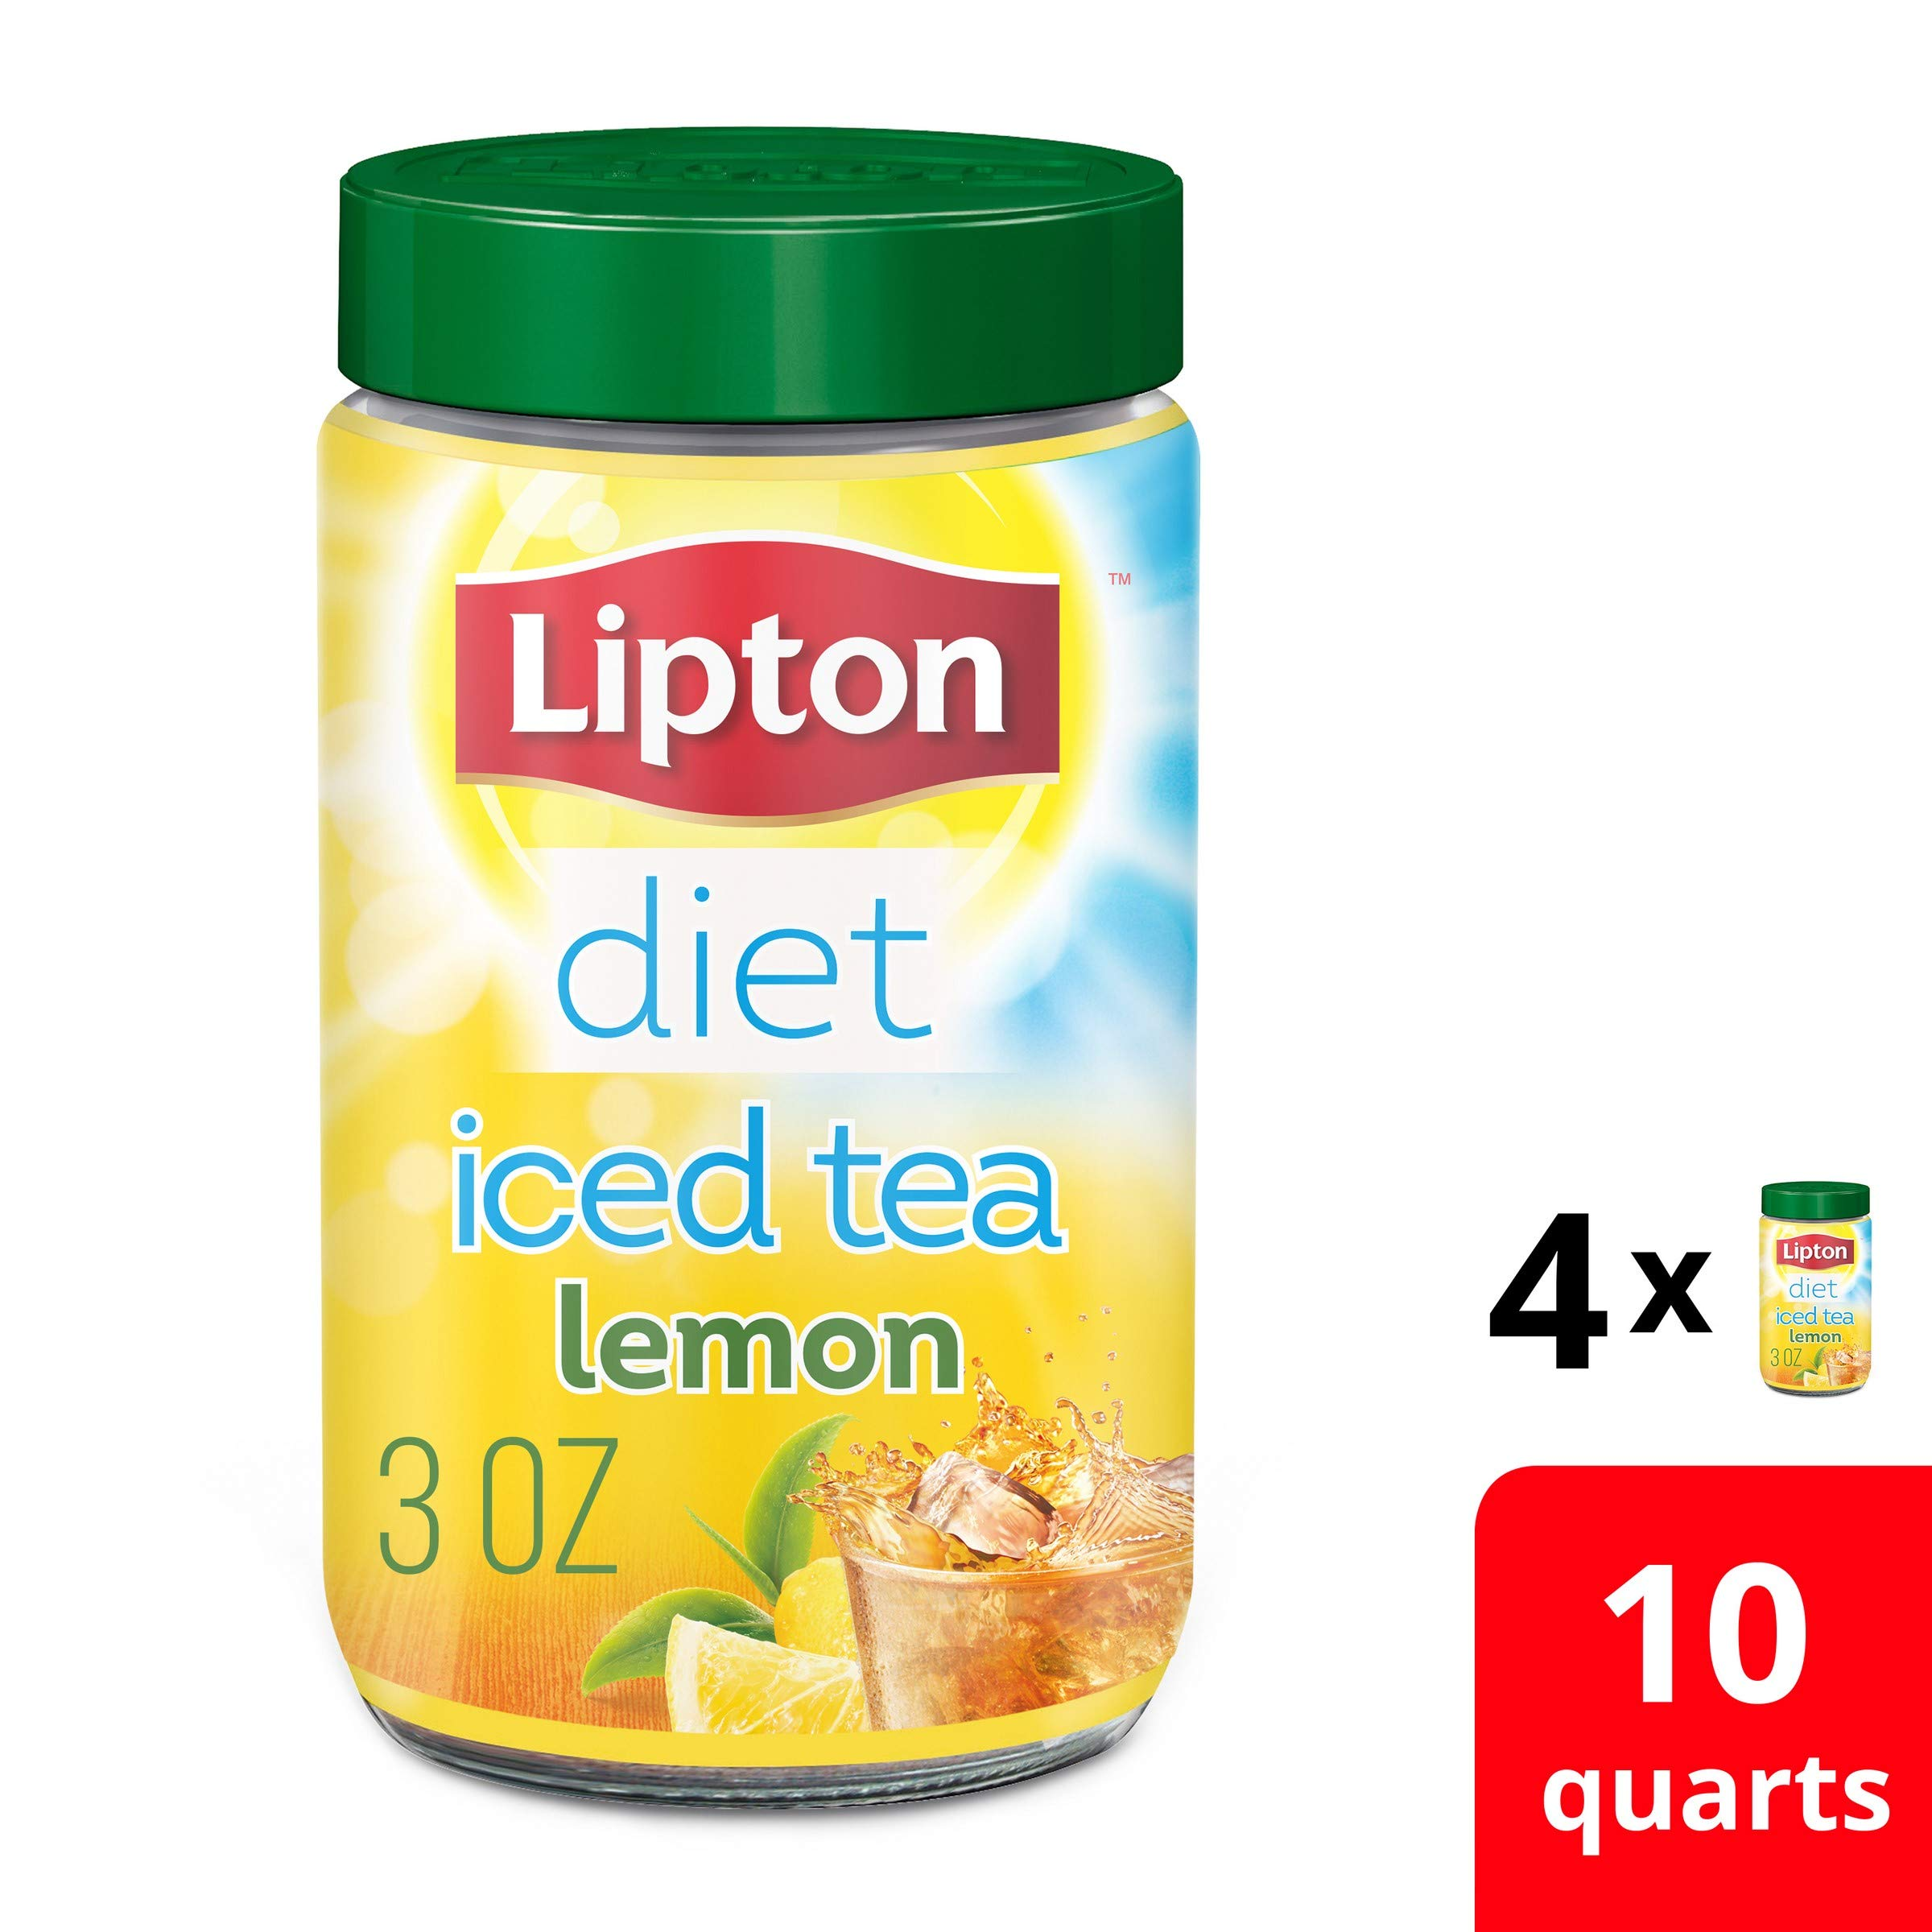 Lipton Diet Iced Tea Mix for any time of day Decaffeinated Lemon 100% Made From Real Tea Leaves Sugar Free, 3 Ounce, Pack of 4 by Lipton